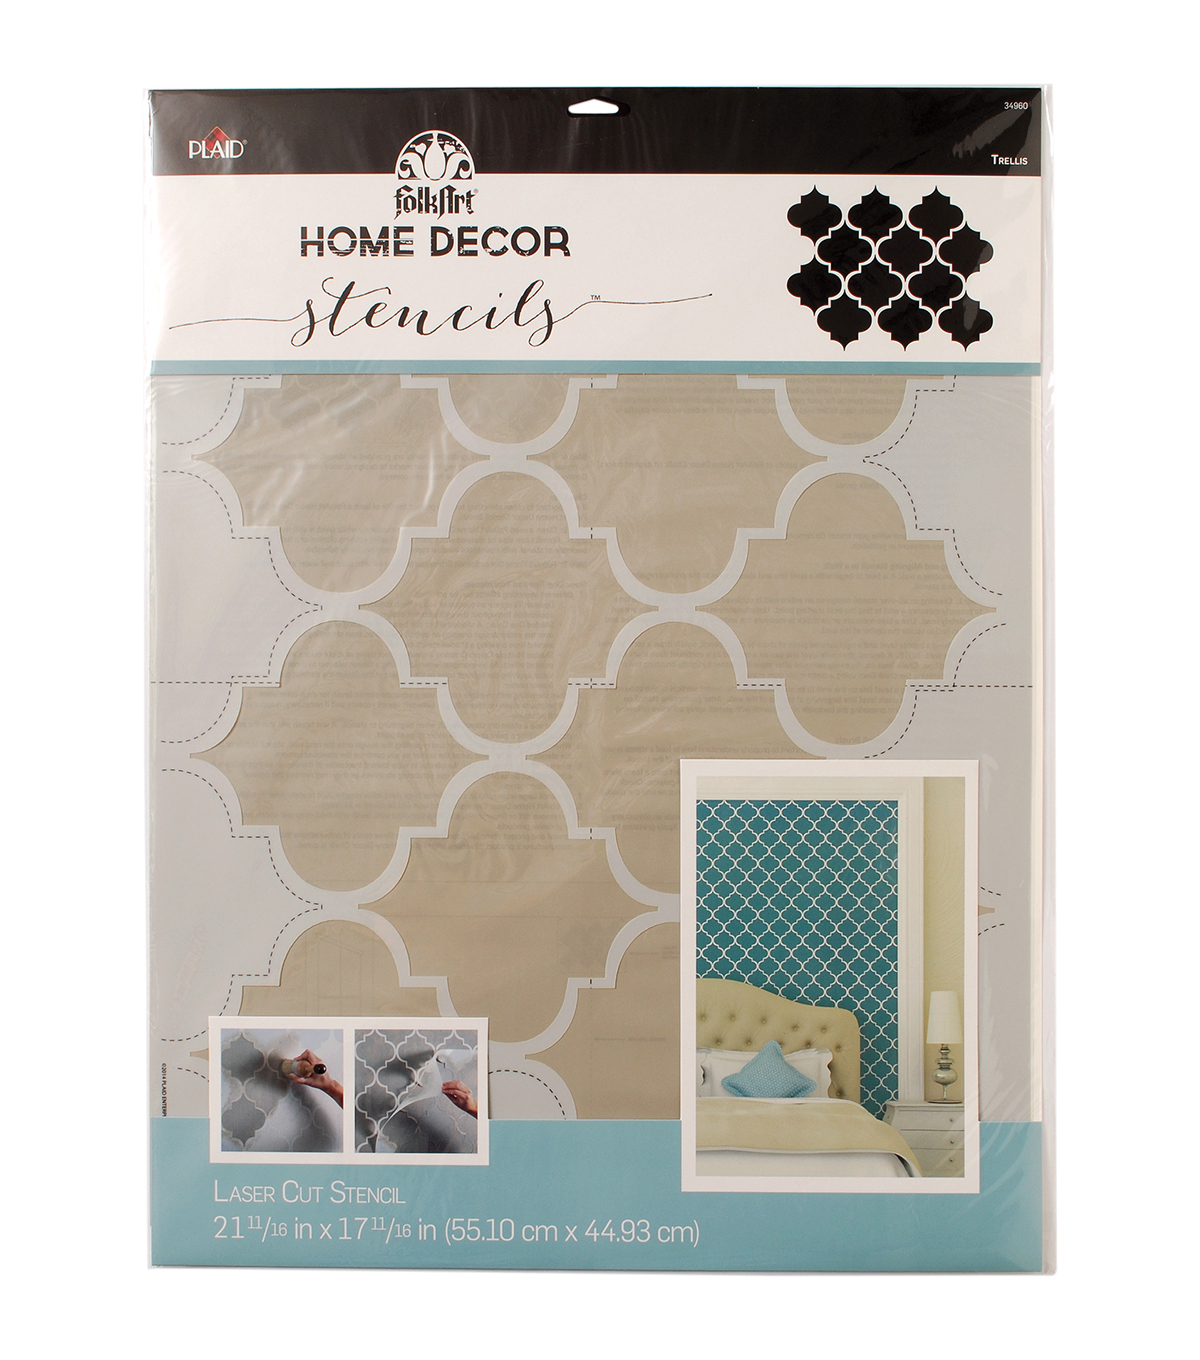 FolkArt Home Decor Wall Stencil-Trellis